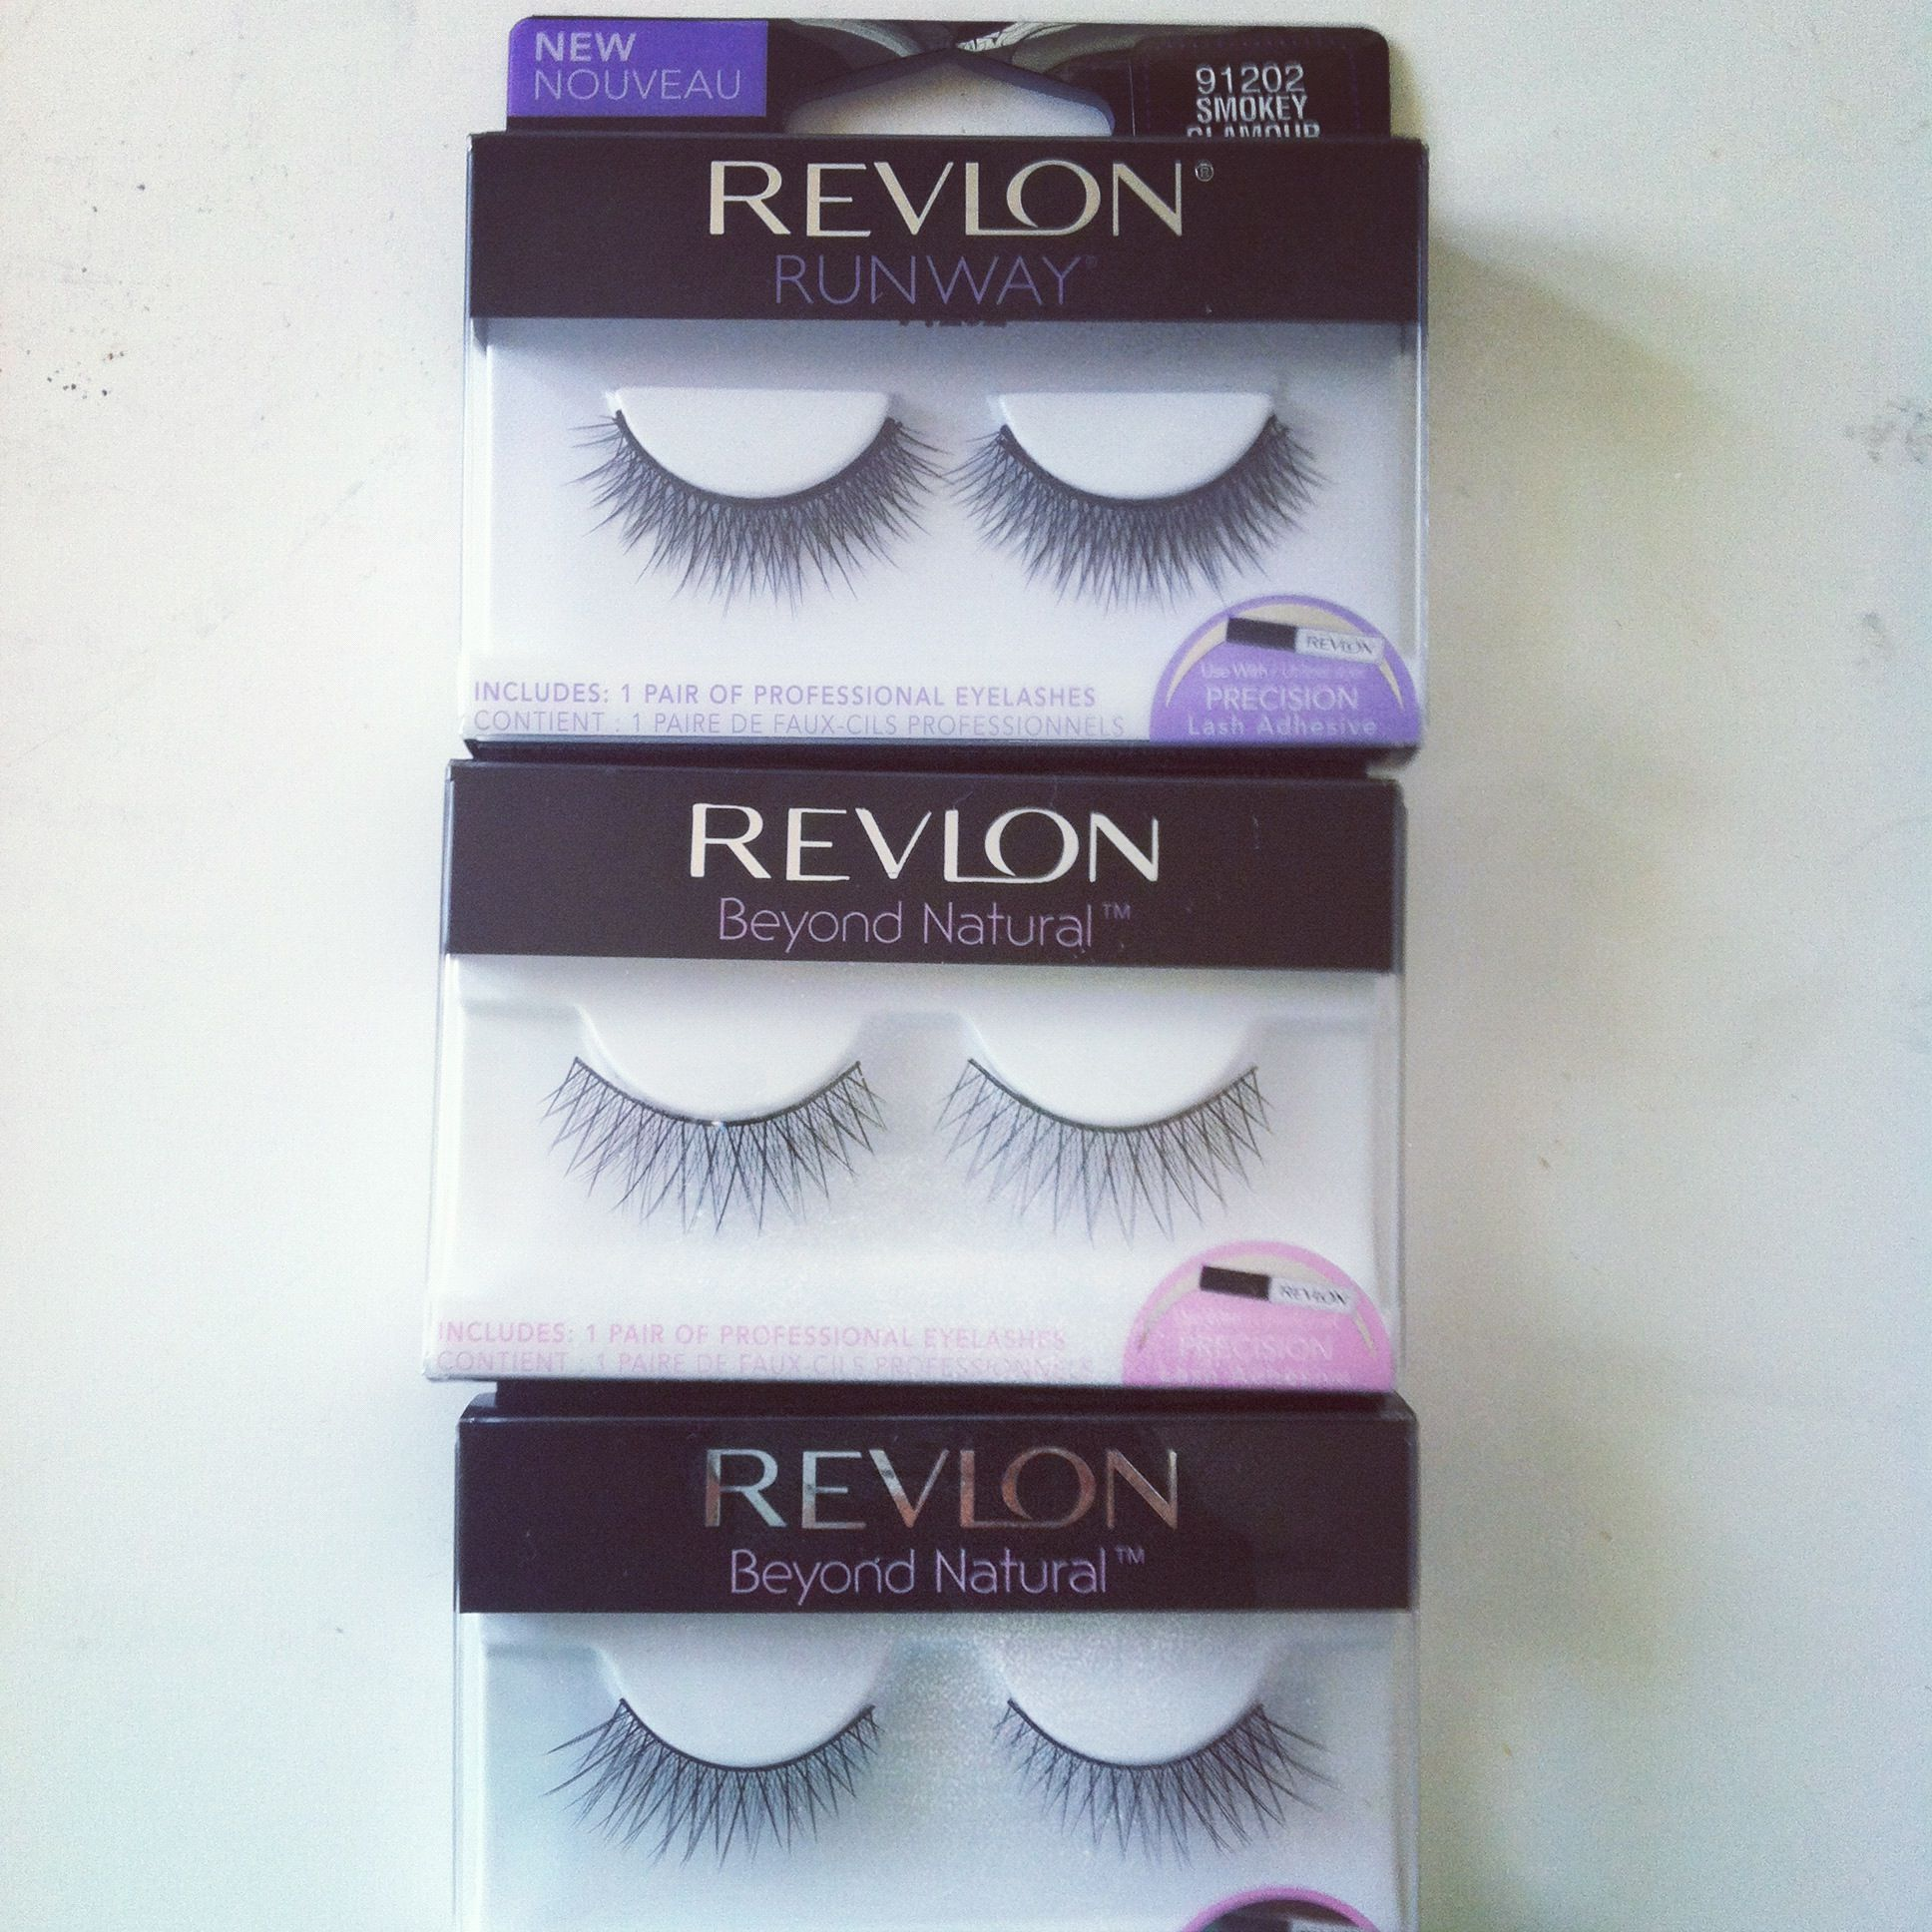 Revlon Beyond Natural Middle False Lashes Are Great Everyday